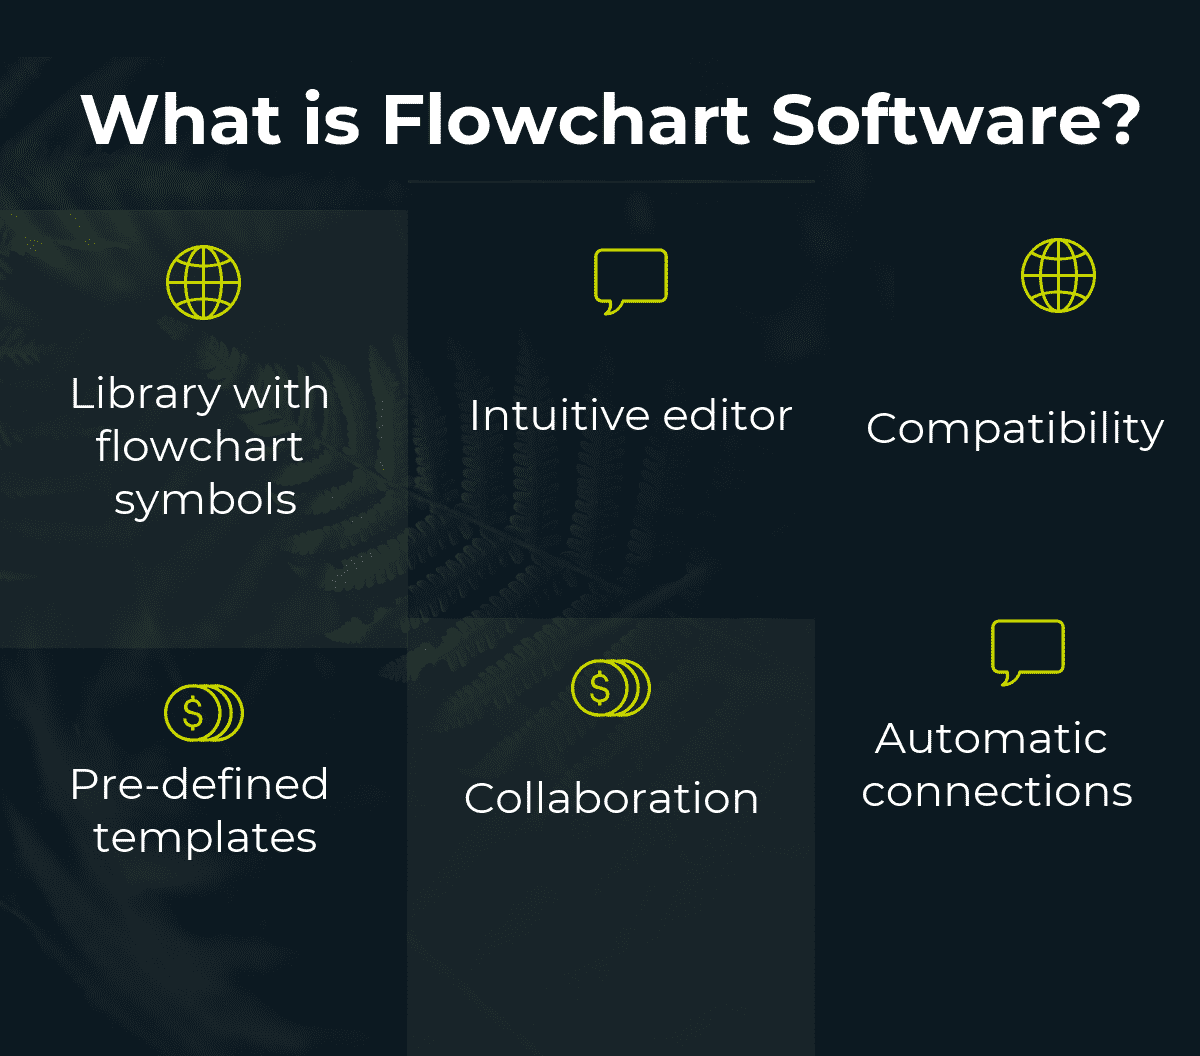 28 Free, Open Source and Top Flowchart Software - Compare